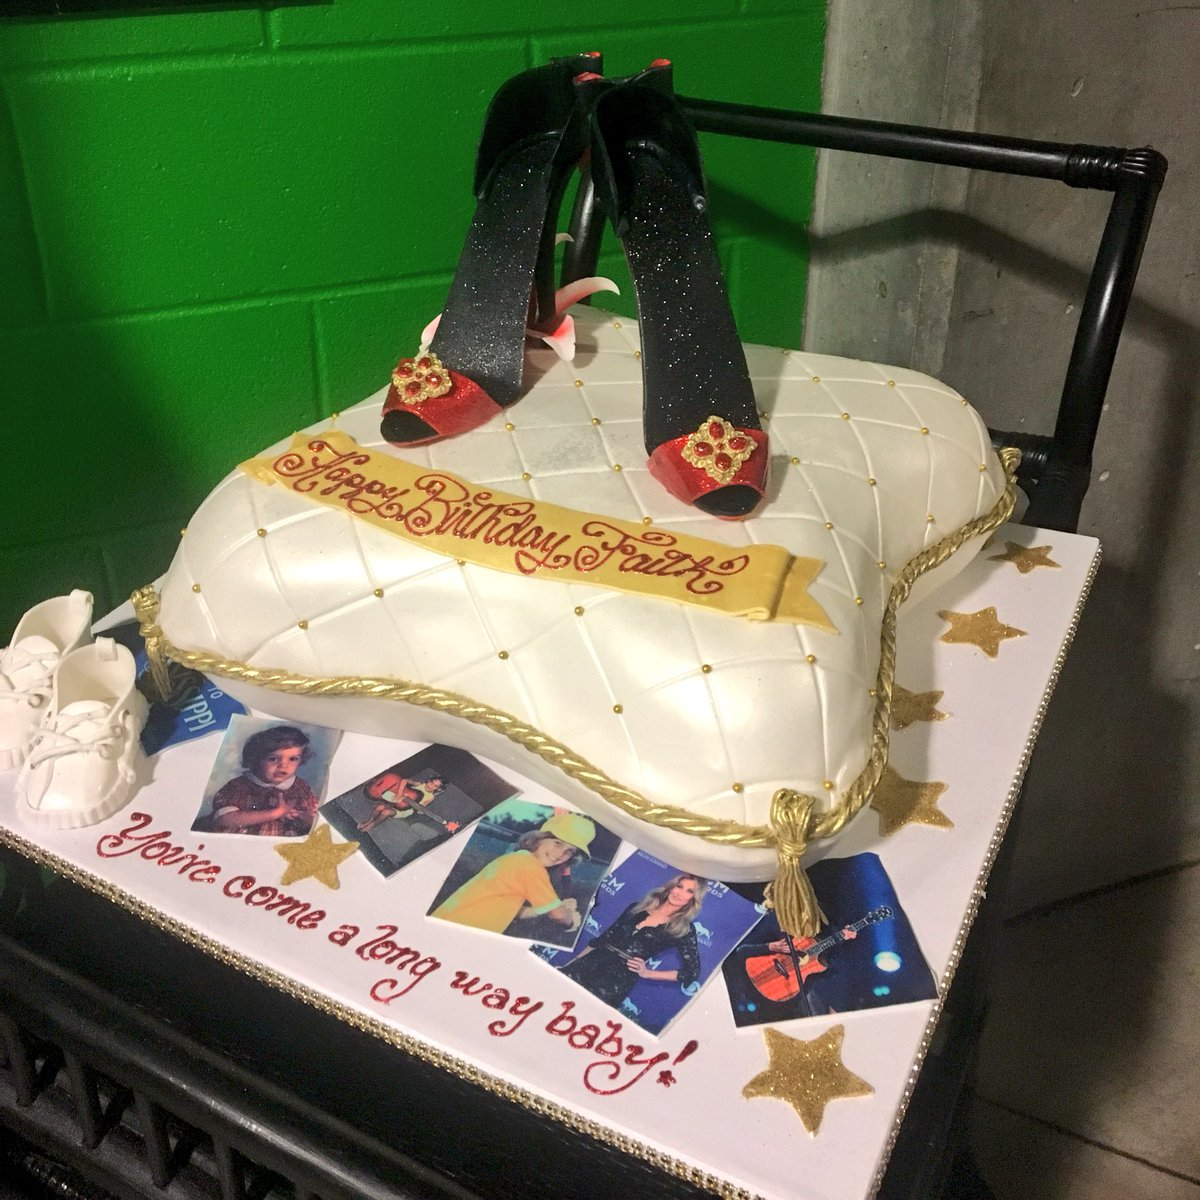 Intrust Bank Arena On Twitter A Fabulous Birthday Cake For A